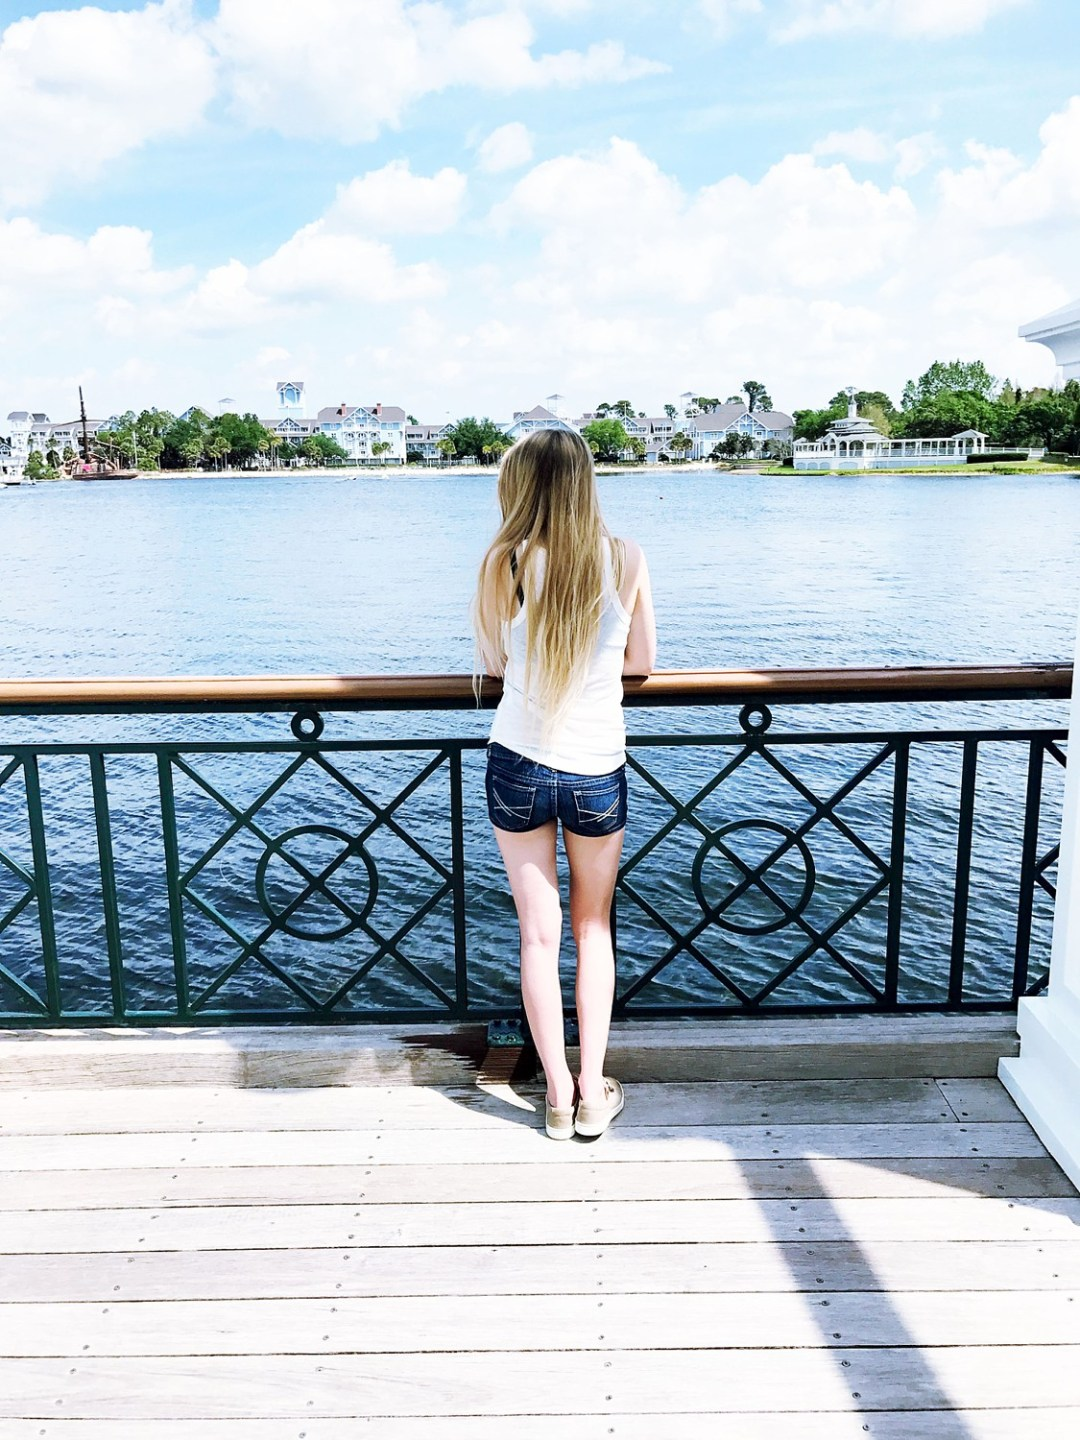 Visiting the Disney Boardwalk in Orlando Florida by Rachael Burgess